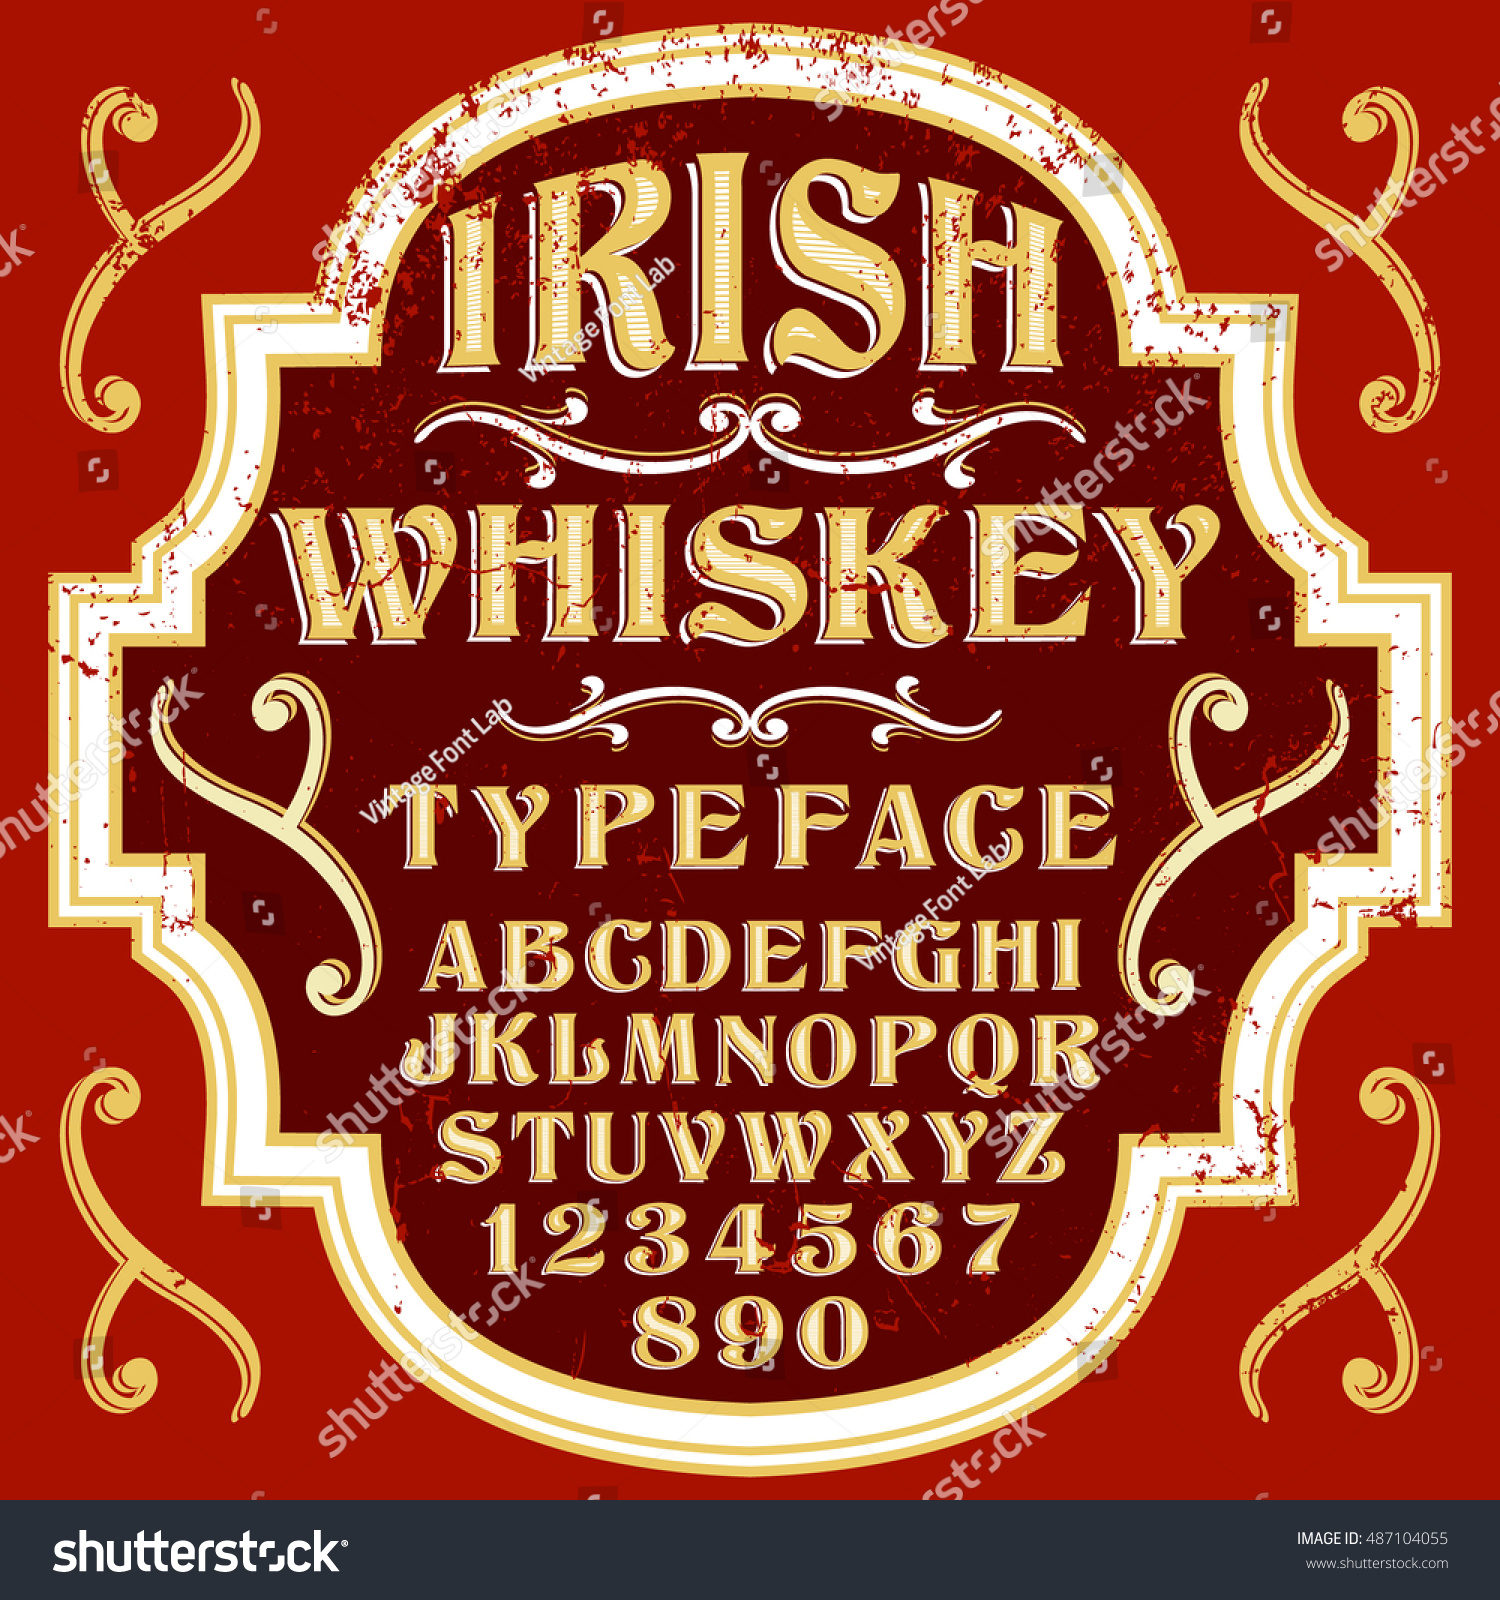 Irish Whiskey vector font old style typeface ideal for drinks label design